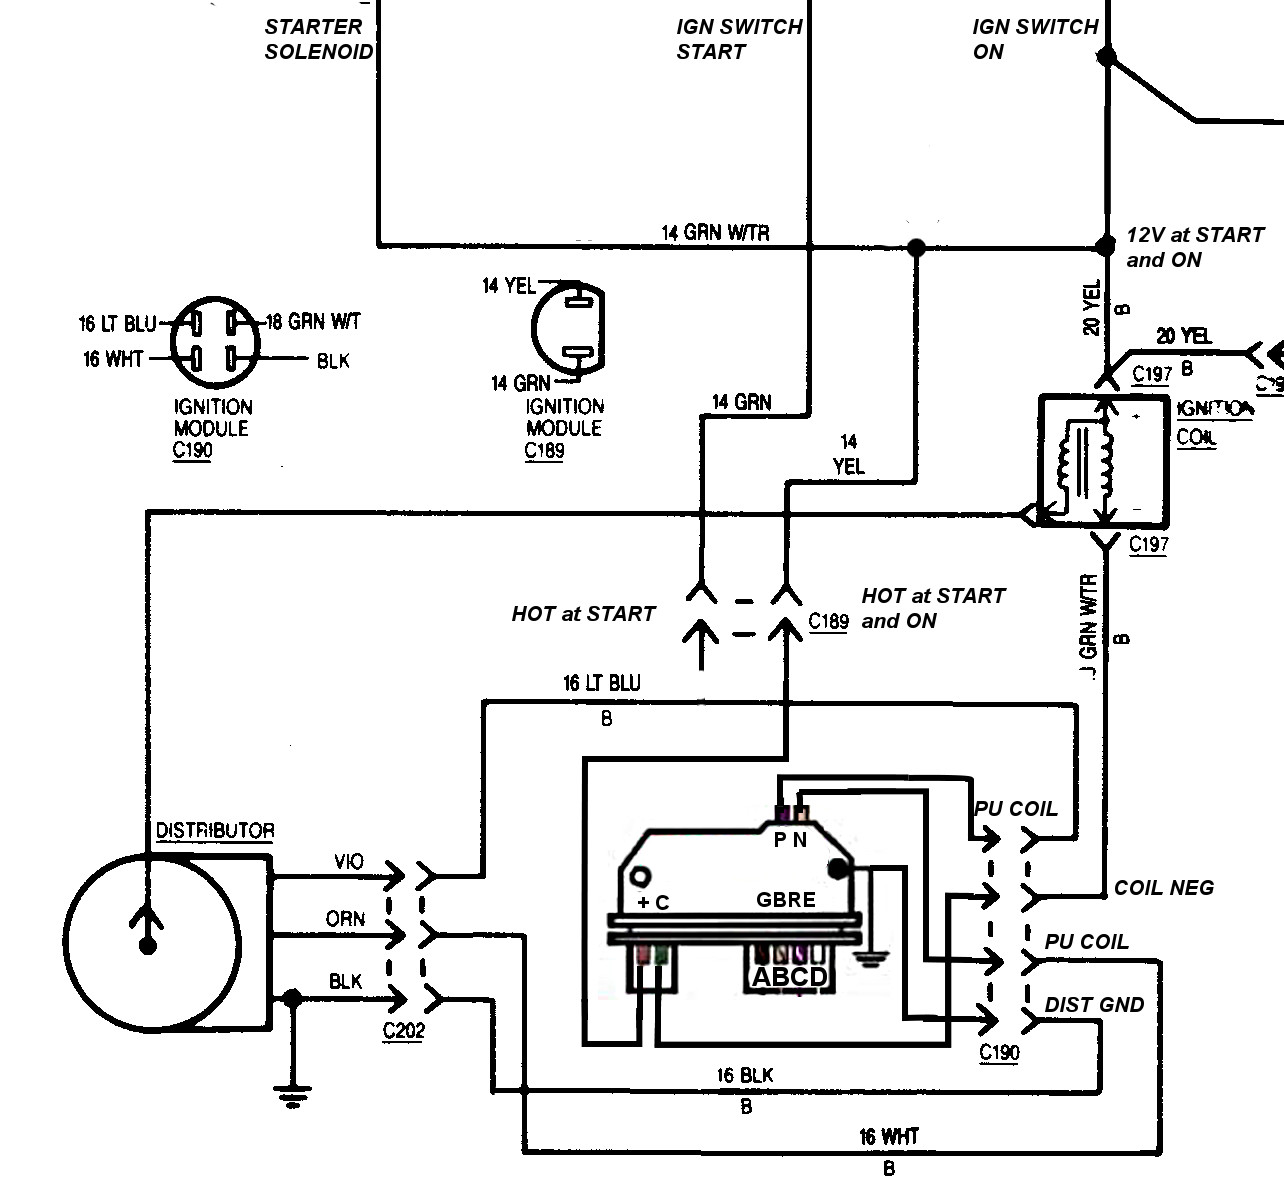 gm p n 20934592 wiring schematic